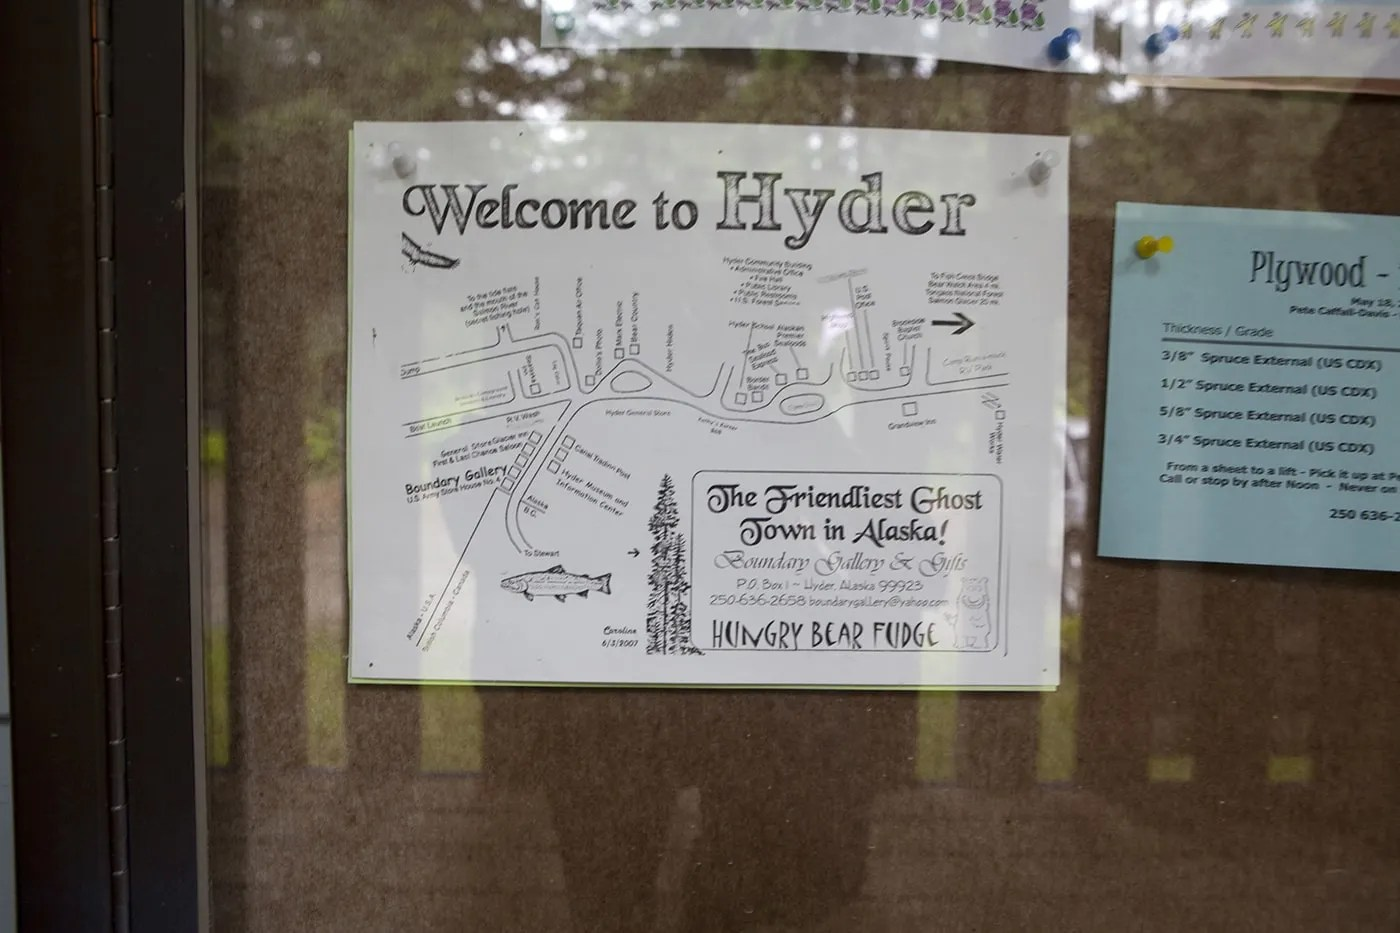 Welcome to Hyder map at the Hyder